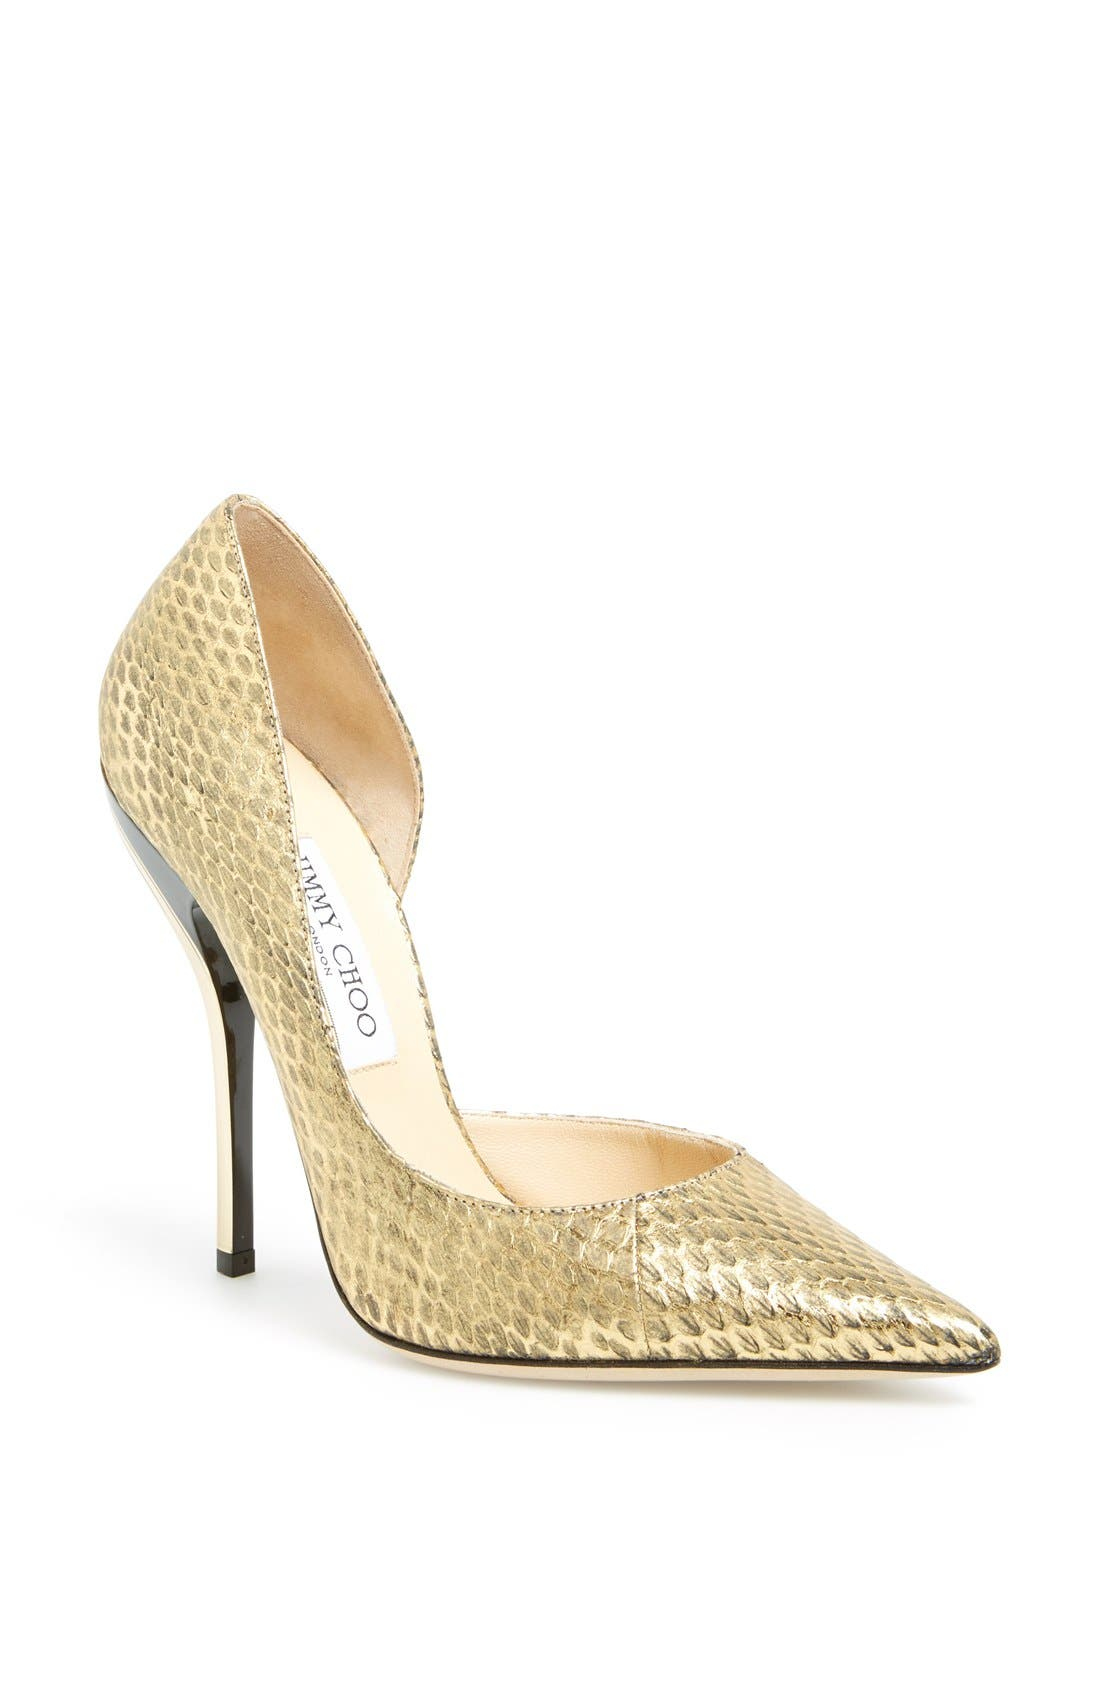 Alternate Image 1 Selected - Jimmy Choo 'Whistler' Snake Embossed Leather Pump